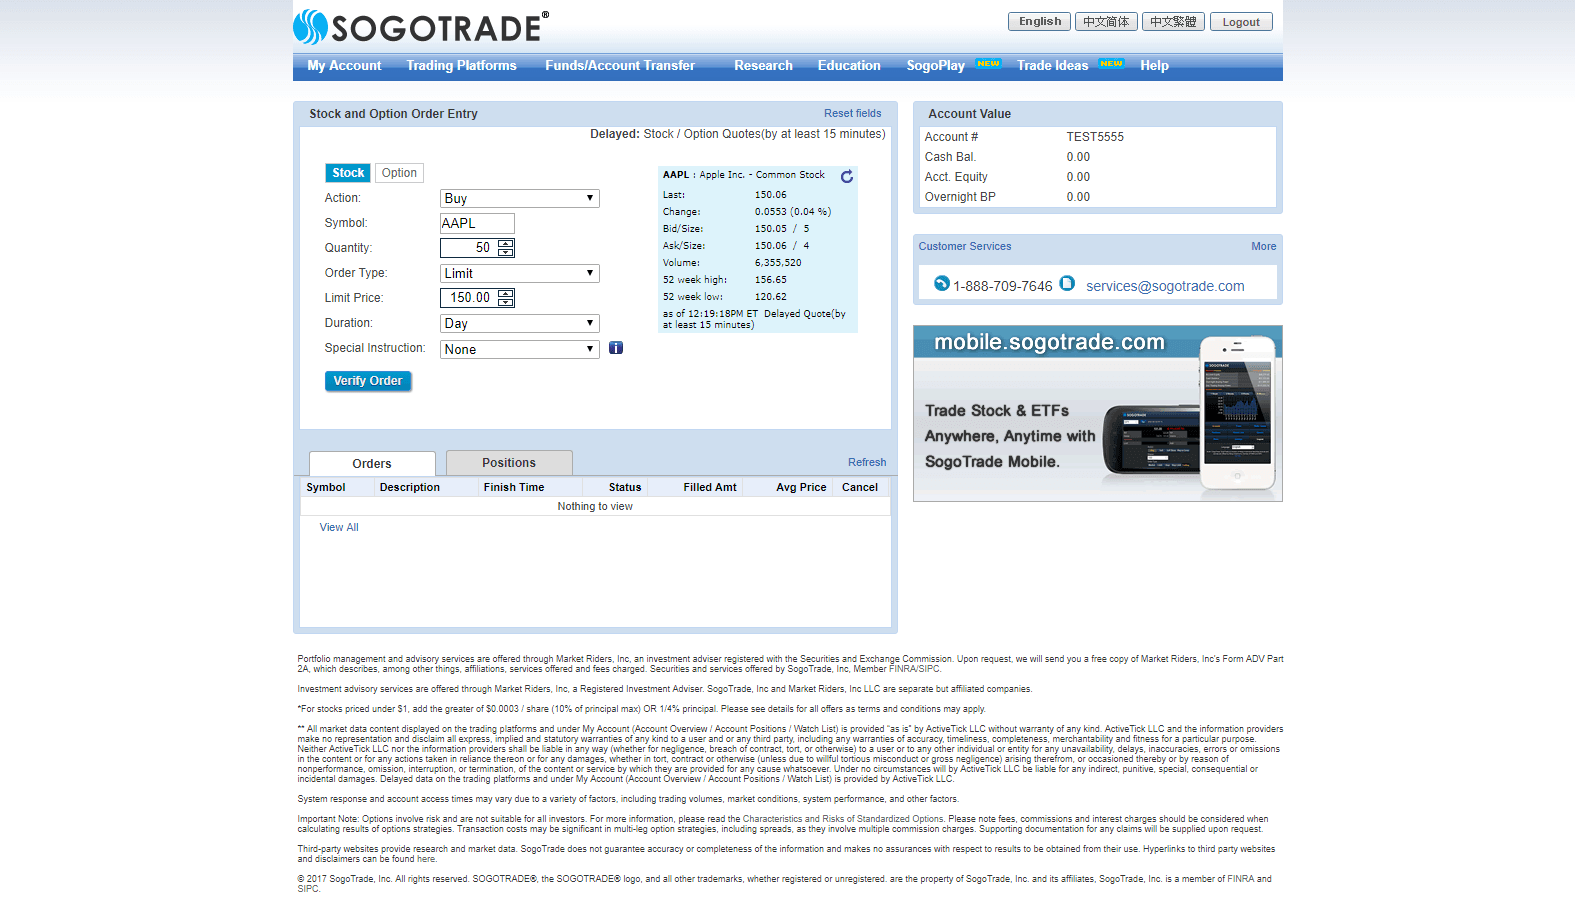 SogoTrade has three web-based trading platforms to choose from. You'll find them under the Trading Platforms link on the menu bar. The first & and most basic & is the SogoOnline platform. It presents you with a simple and straightforward order entry ticket for either stocks/ETFs or options. Enter your order details and click Verify Order to make sure you don't need to modify anything. You'll see your order status in the Orders window that appears below the order ticket, and you can toggle to the Positions tab to see what you already have in your portfolio.